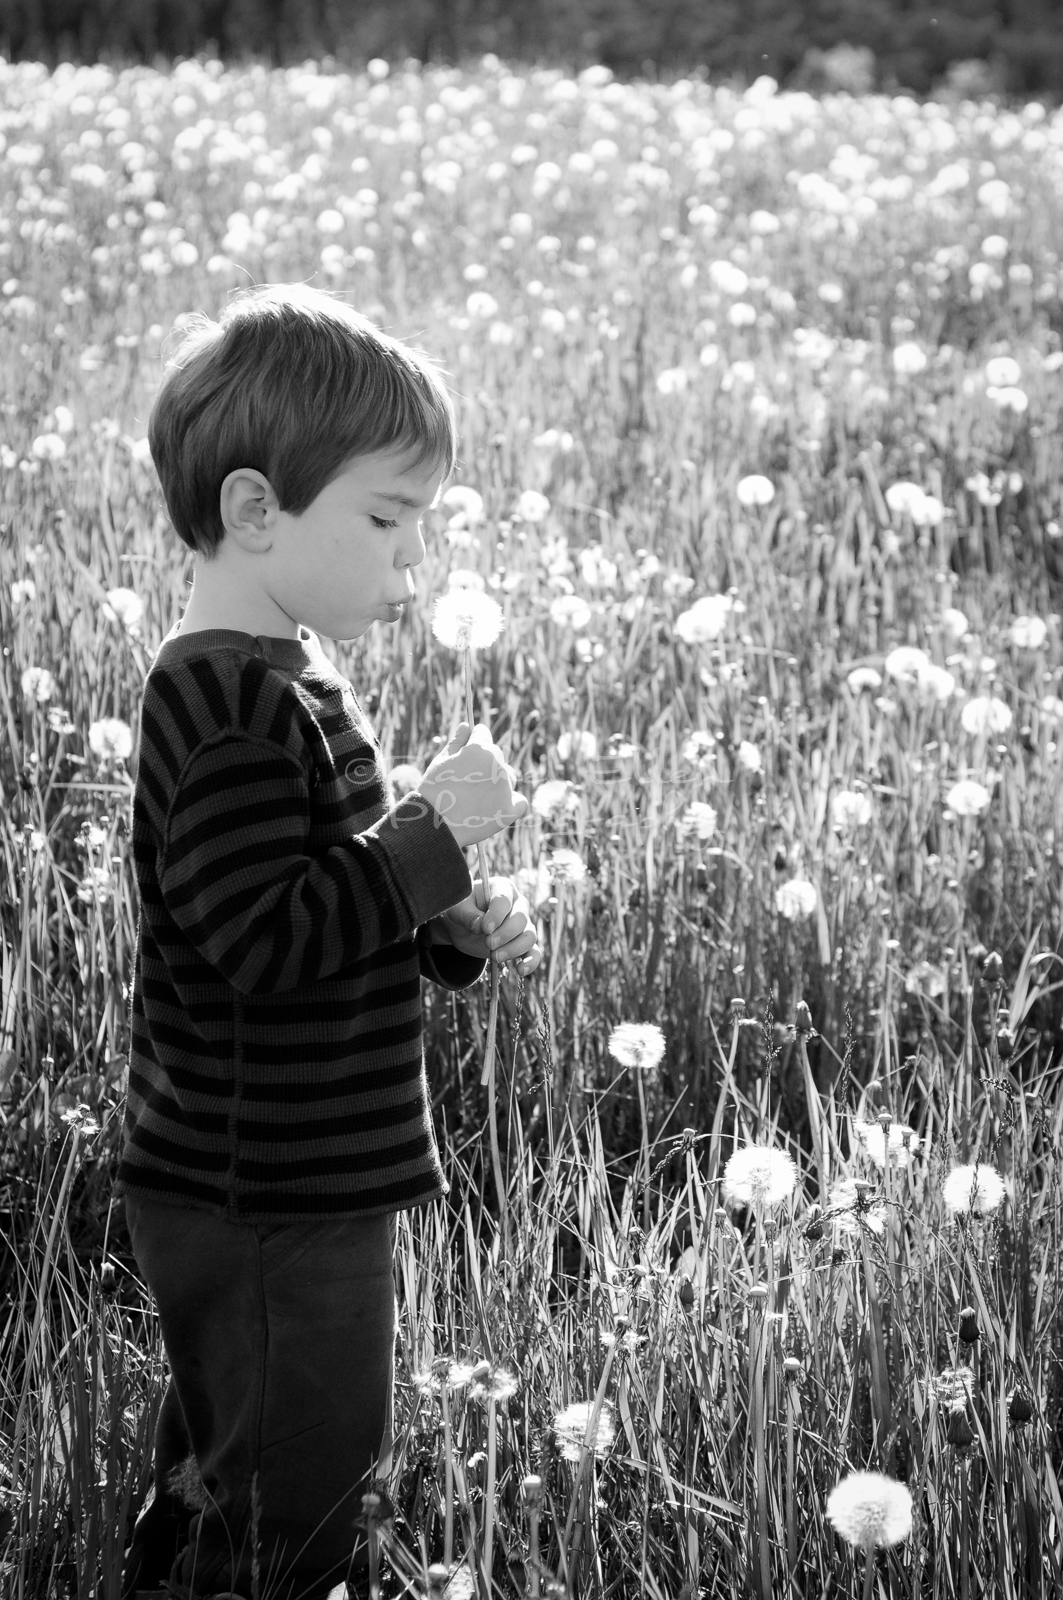 Kids Blowing Dandelion fuz